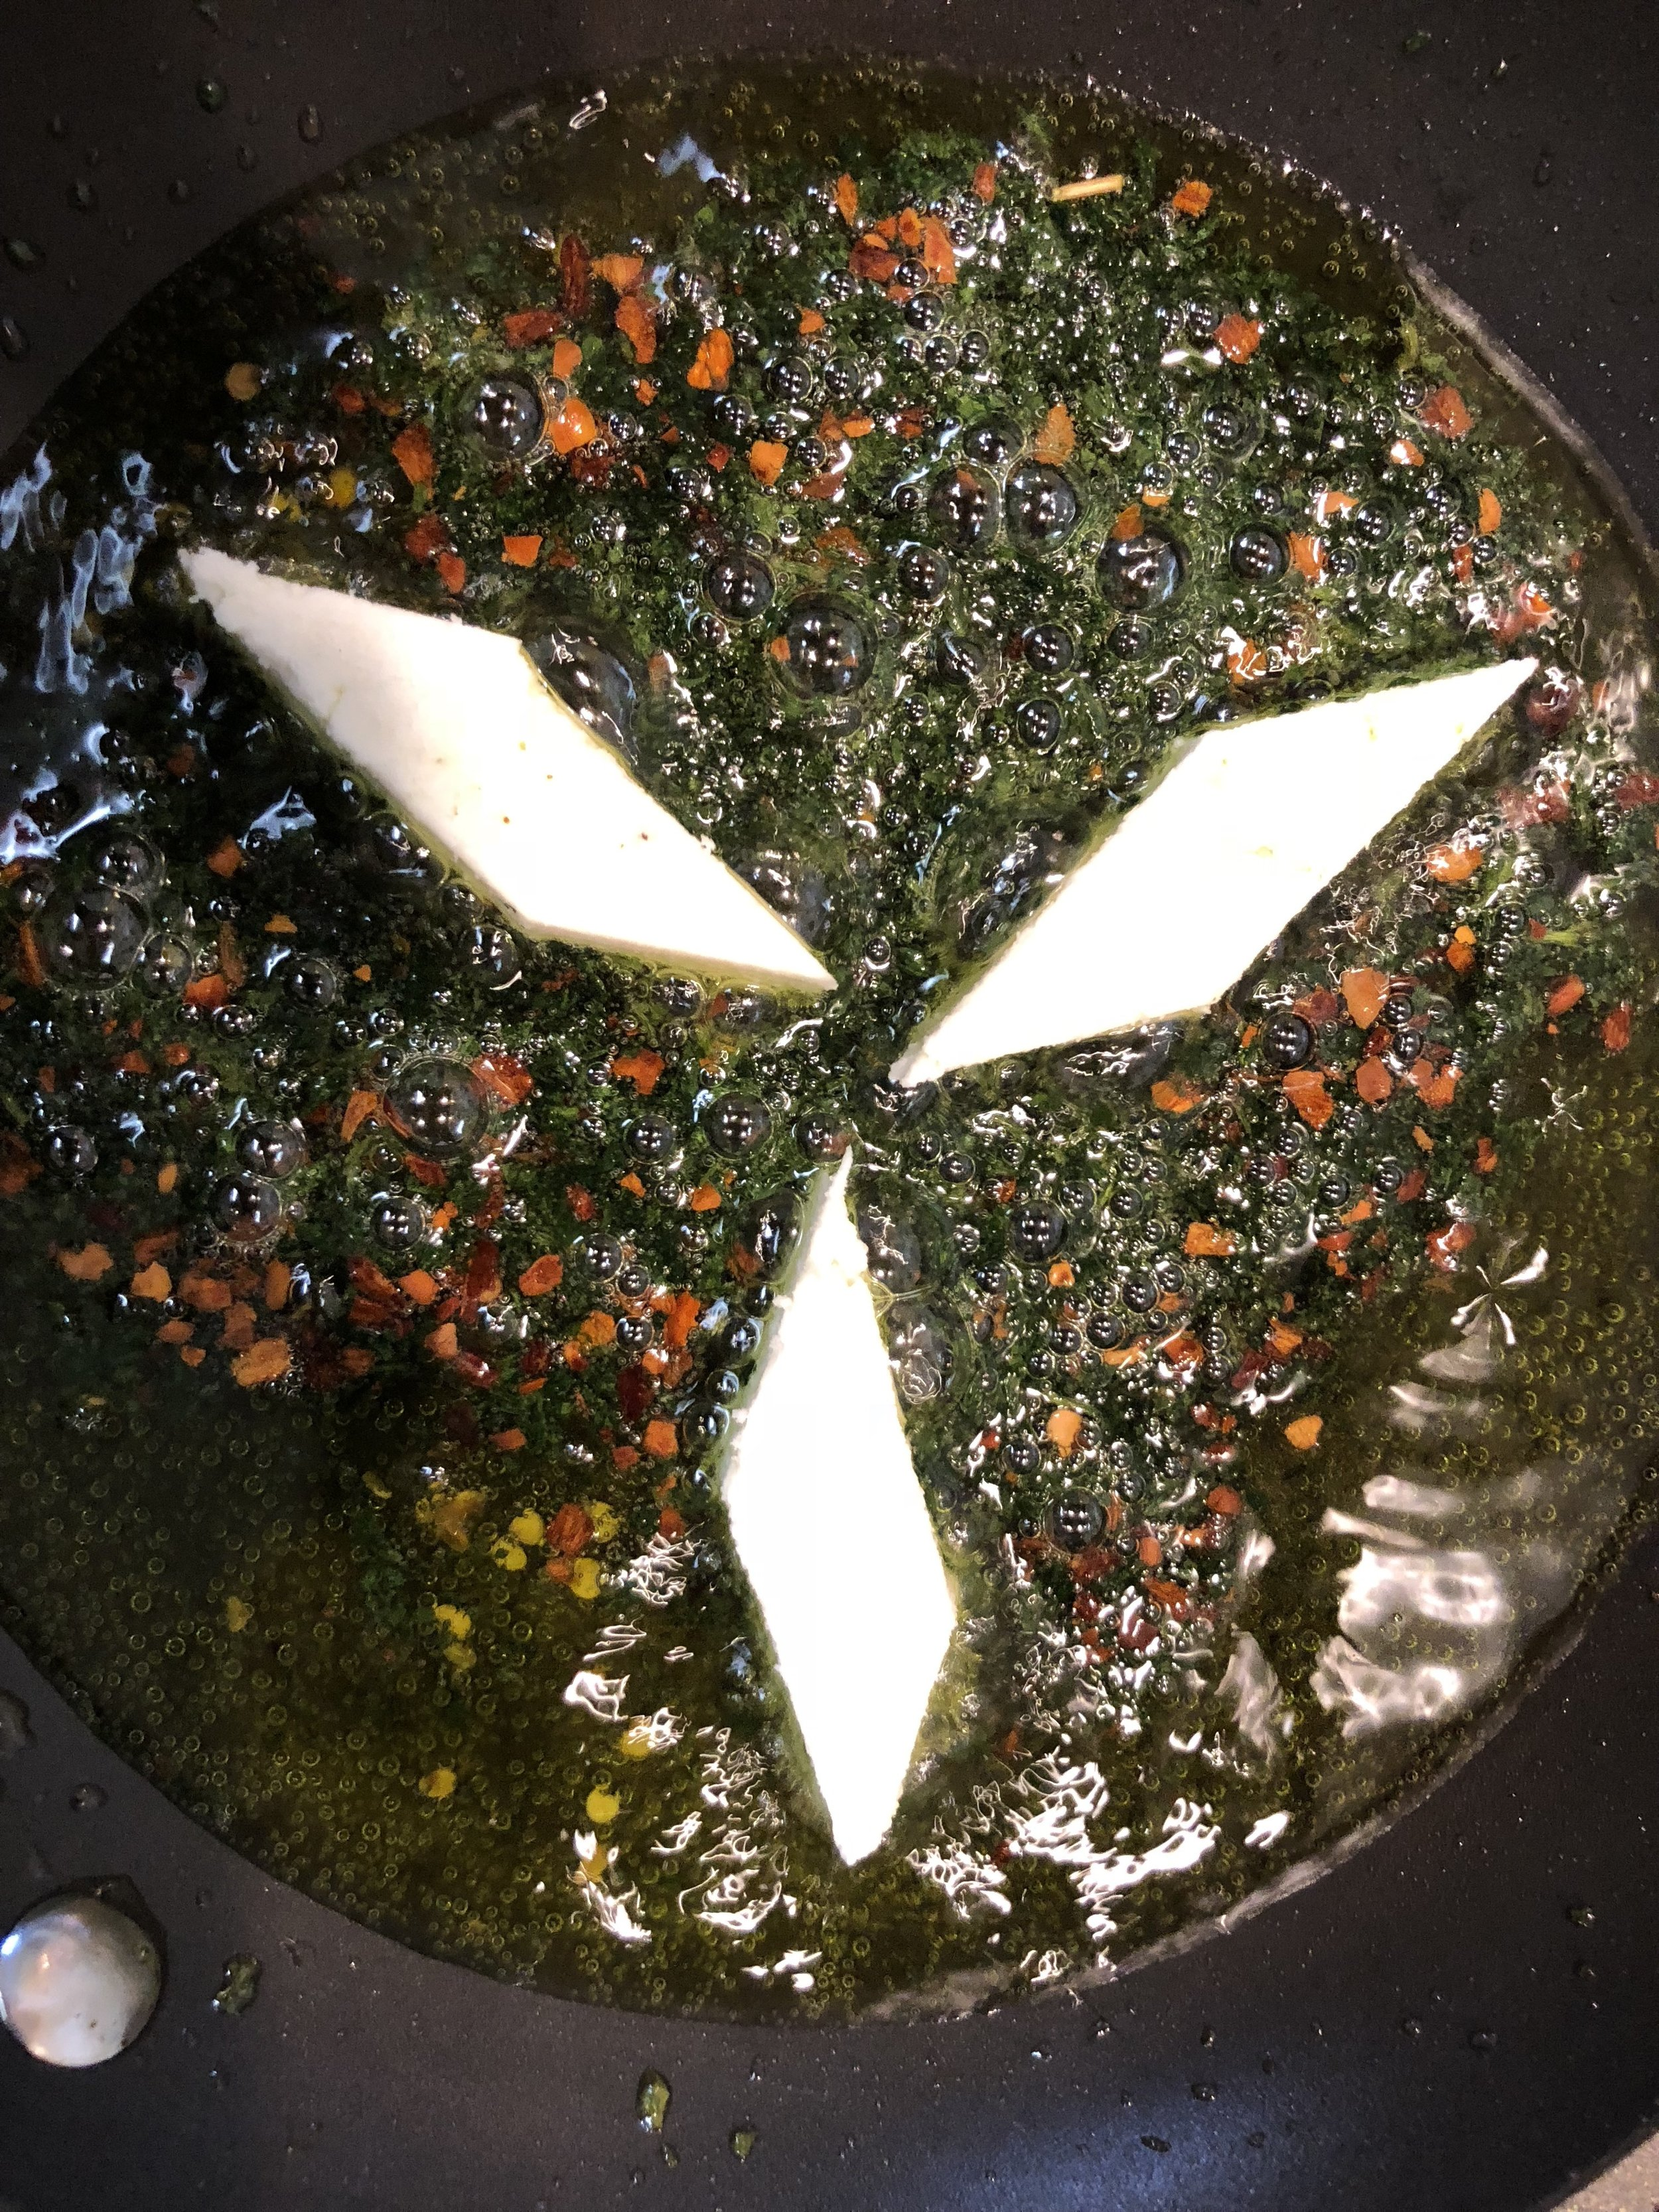 Pan frying the paneer cheese in cilantro-red chili oil.